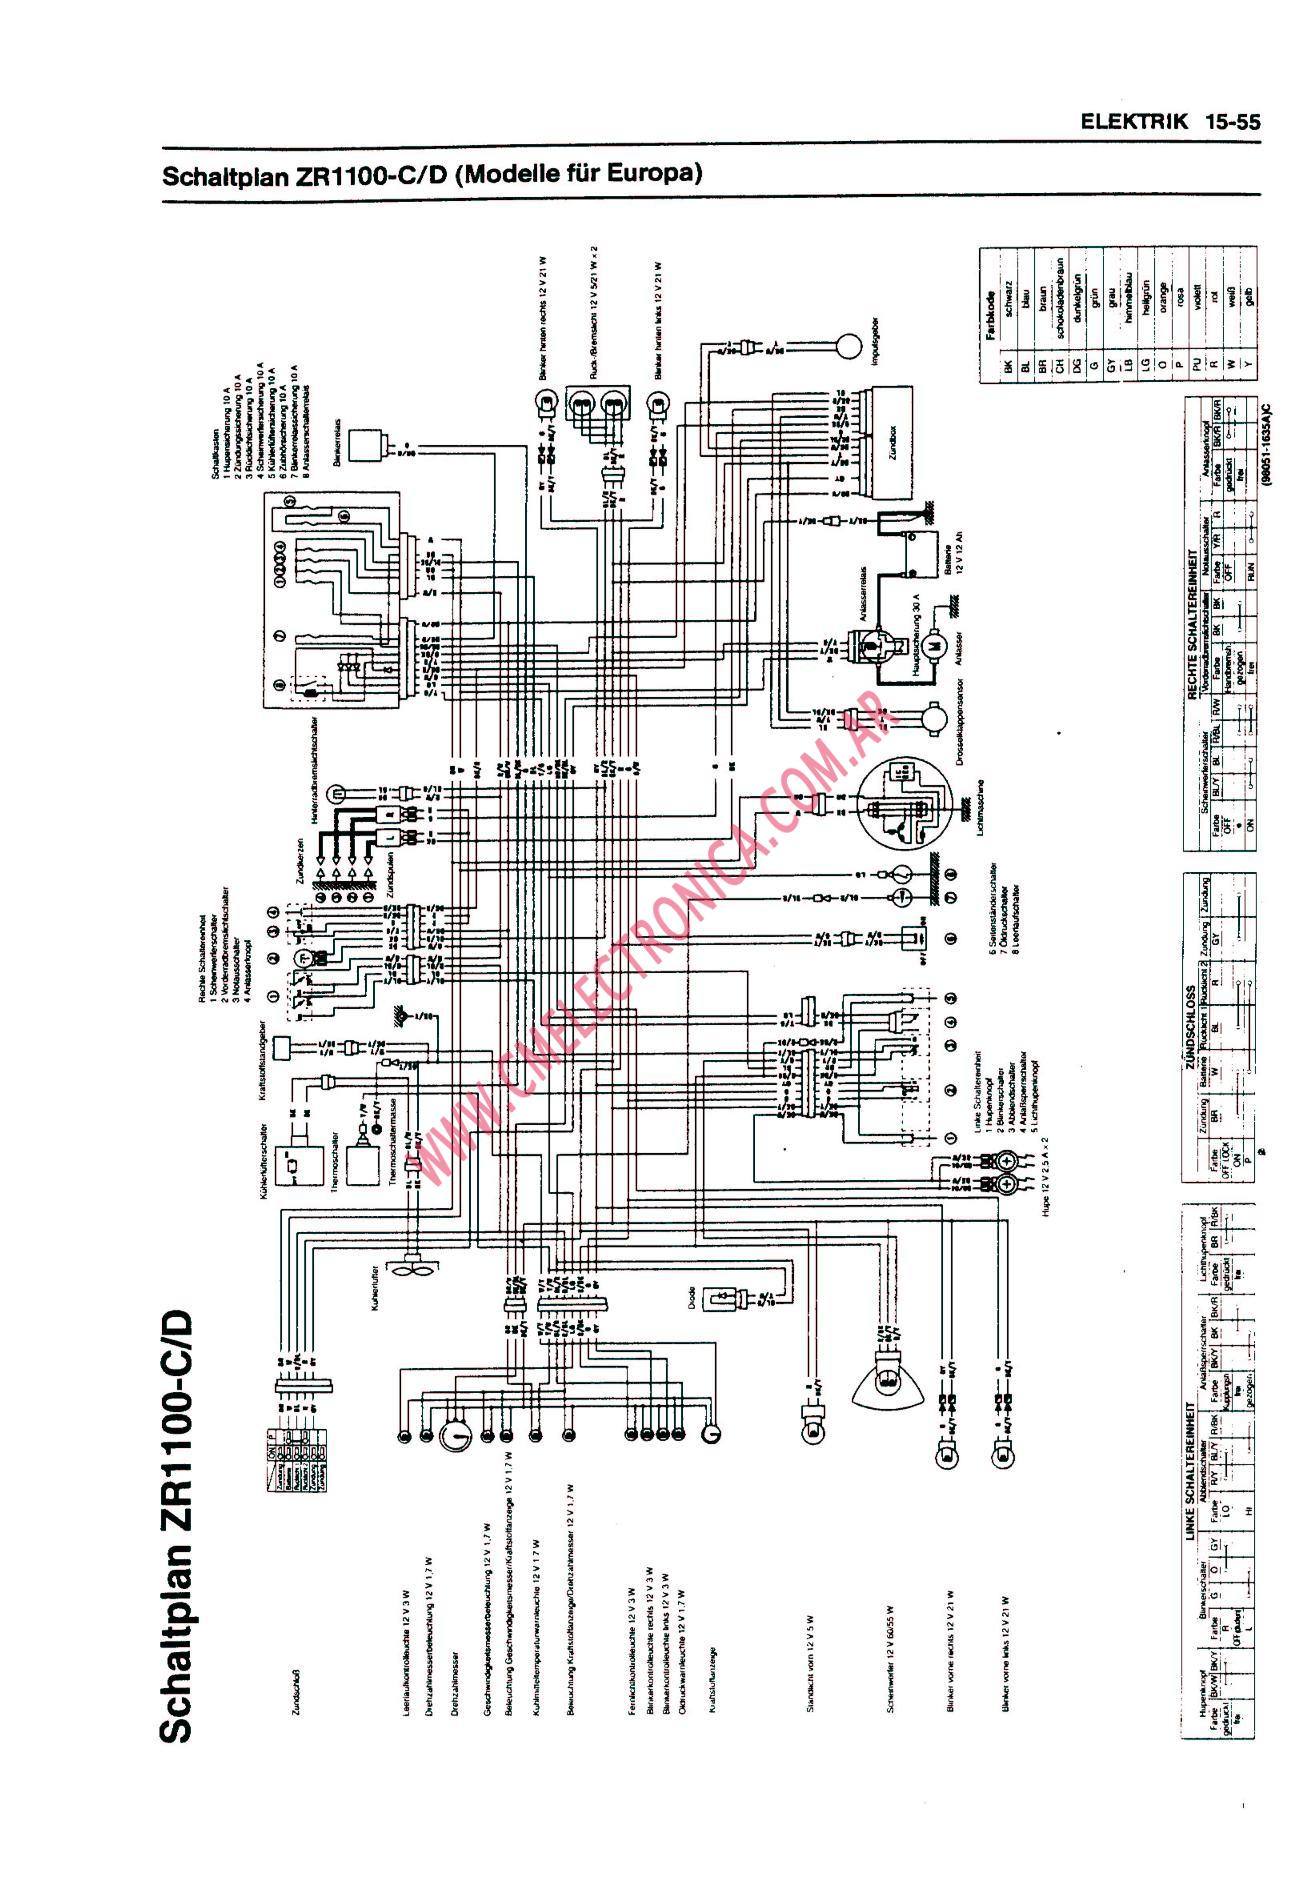 2000 Kawasaki Zx12 Wiring Diagram 2006 Zx12r Best Secret Diagrams Free Engine Image For Zx9r 1200